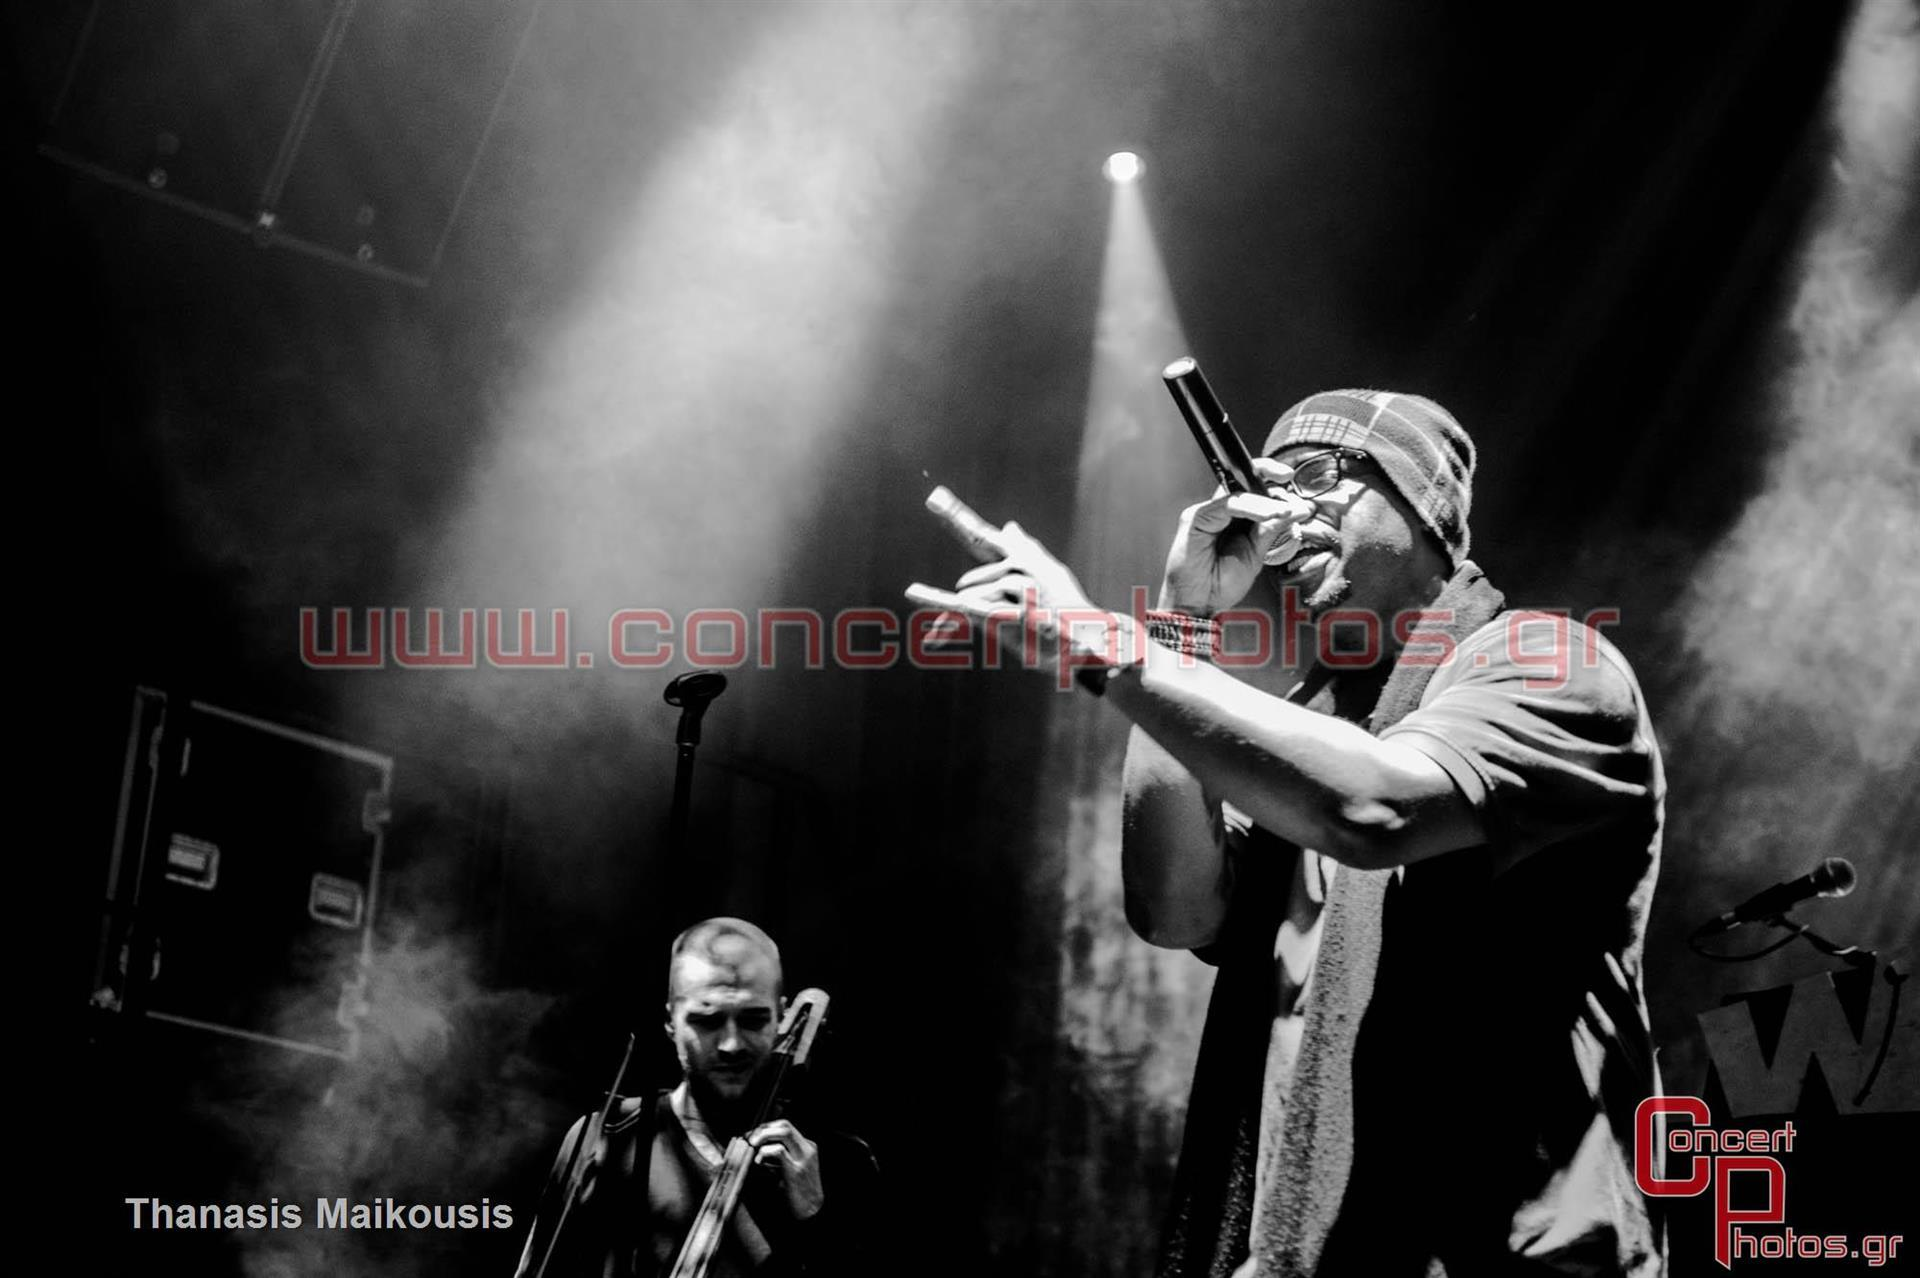 Wax Tailor - photographer: Thanasis Maikousis - ConcertPhotos-7819